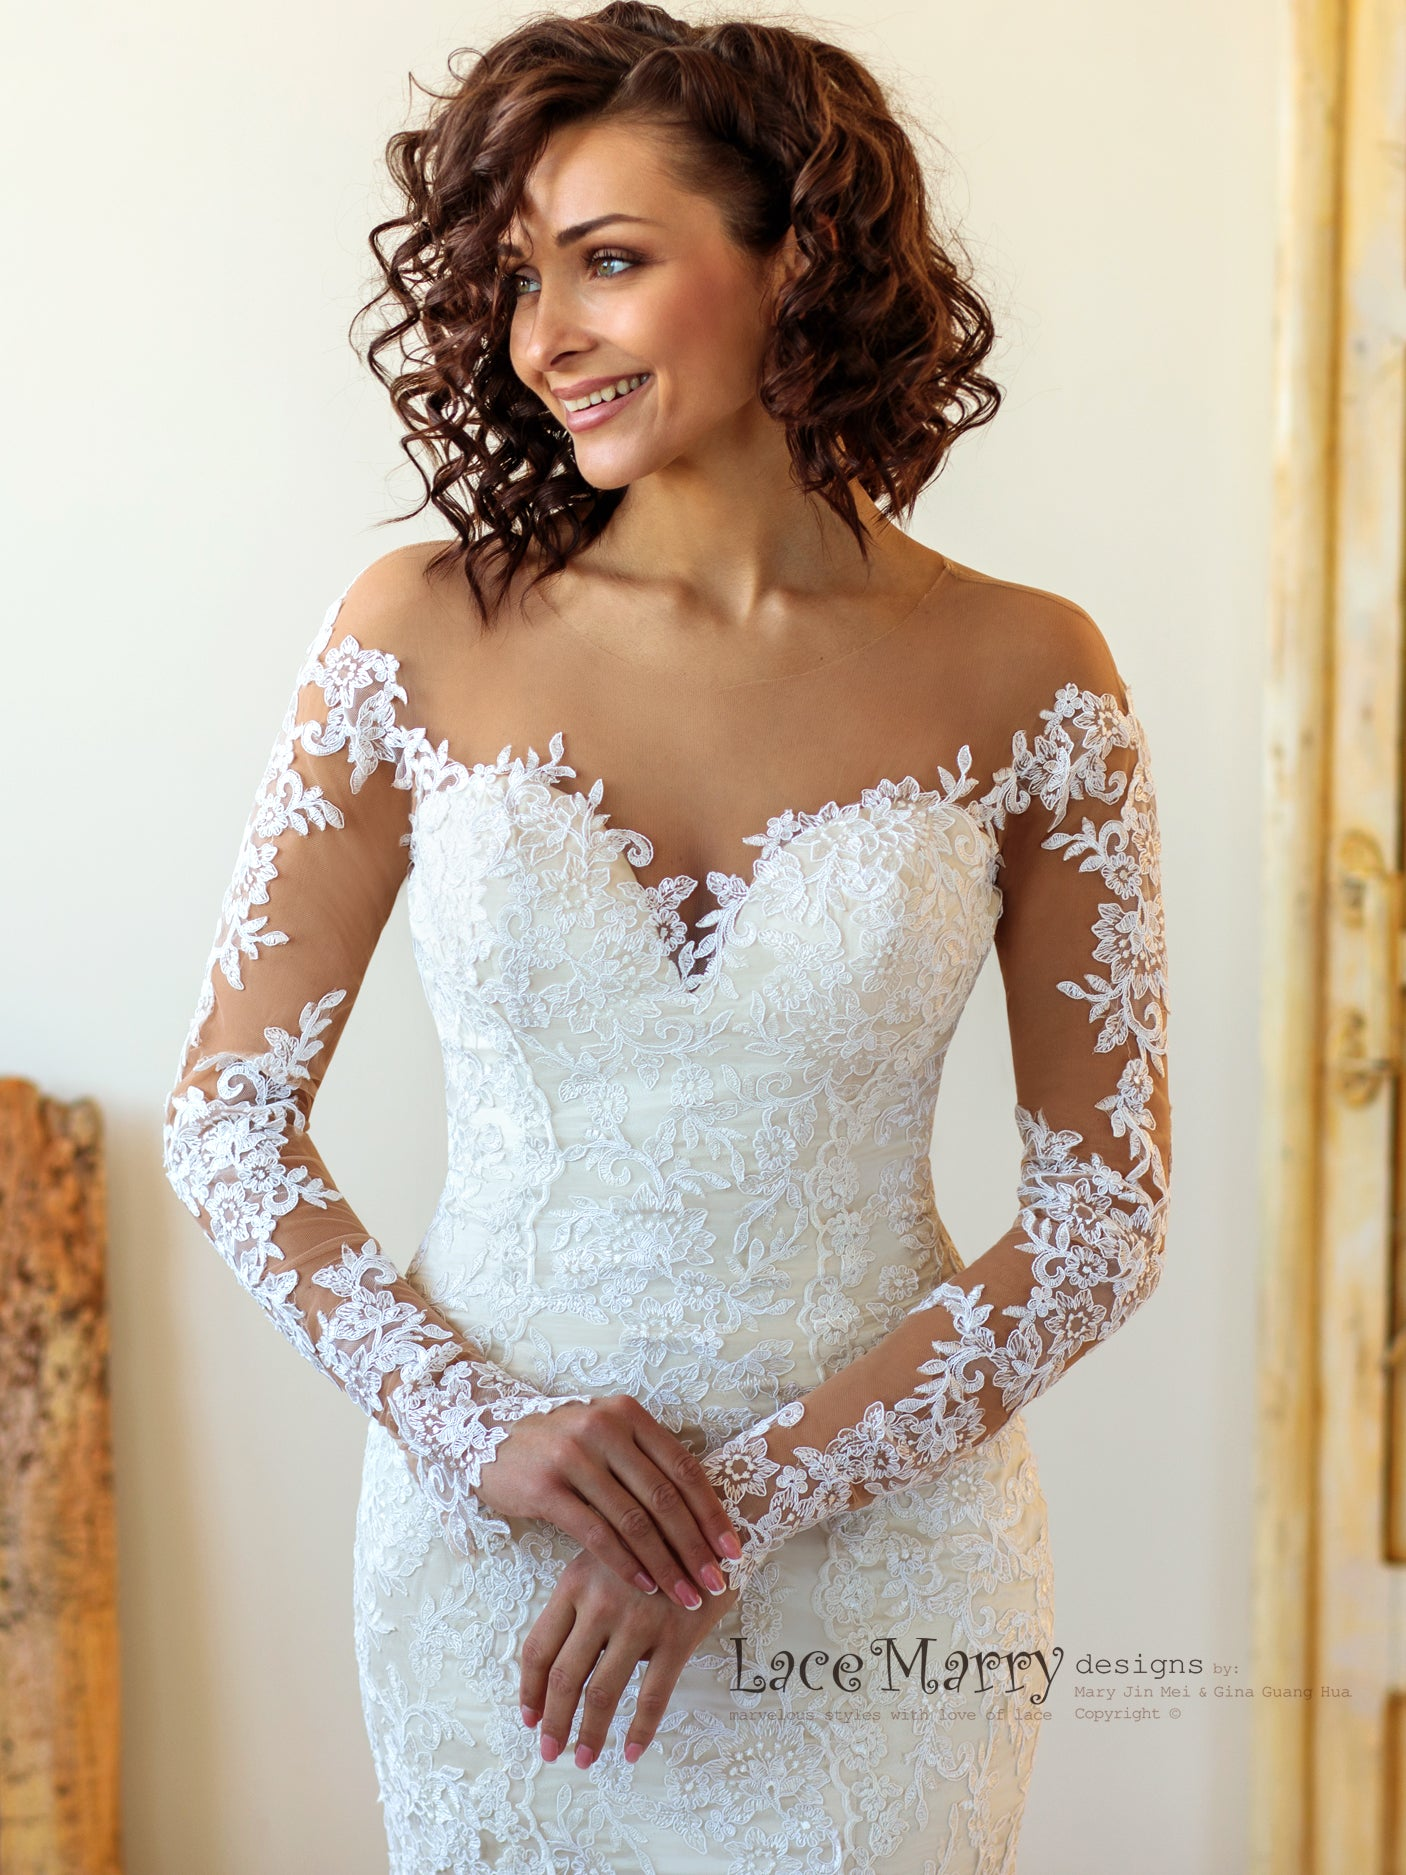 Handmade Wedding Dresses Collection 2021 Lacemarry